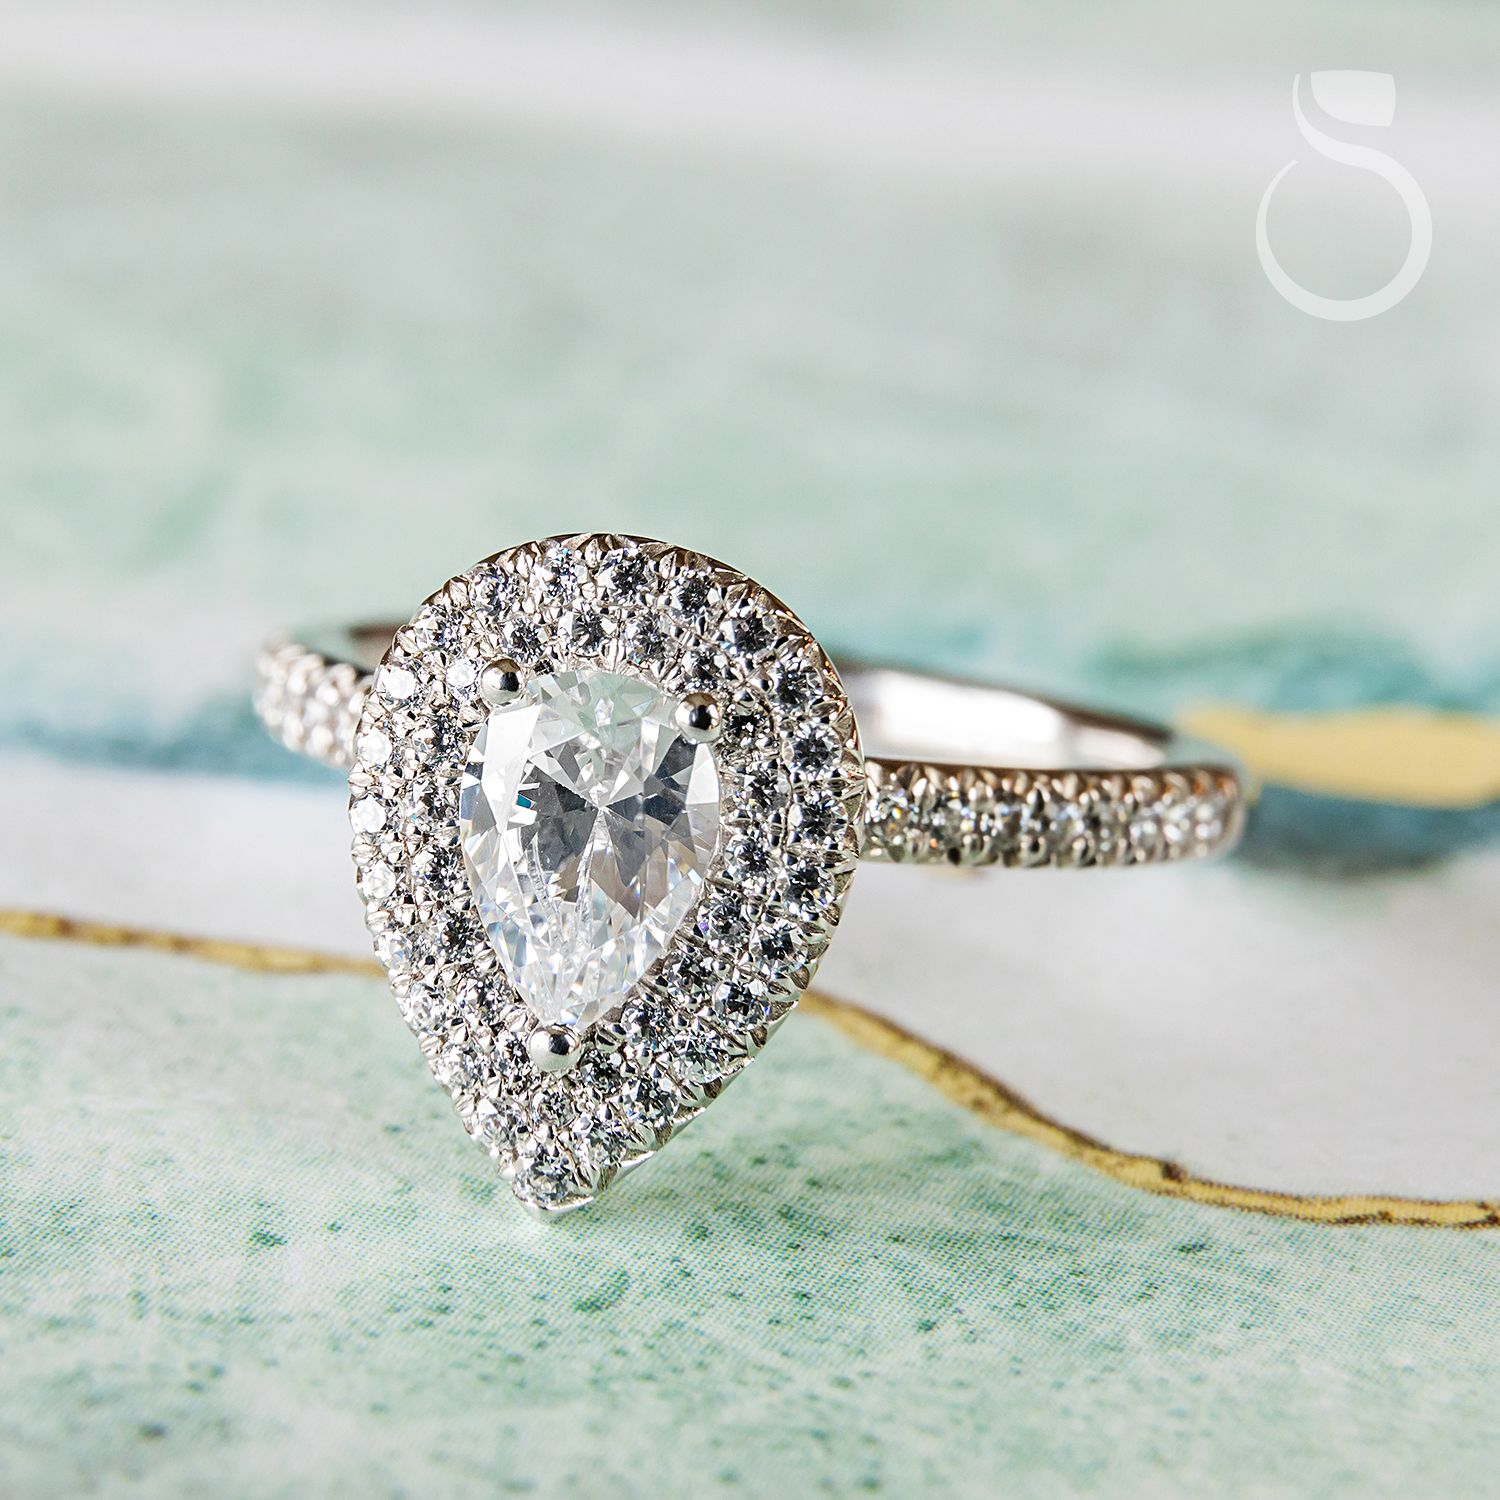 """Add the """"pearfect"""" touch with this pear-shaped, double halo engagement ring!  sylviecollection.com (Style no. S1495)  #SylvieCollection #SomethingSylvie #GetEngagedWithSylvie #EngagementRing #Diamonds #Jewelry #RingOfTheDay #Fashion #Style #JewelryTrends"""